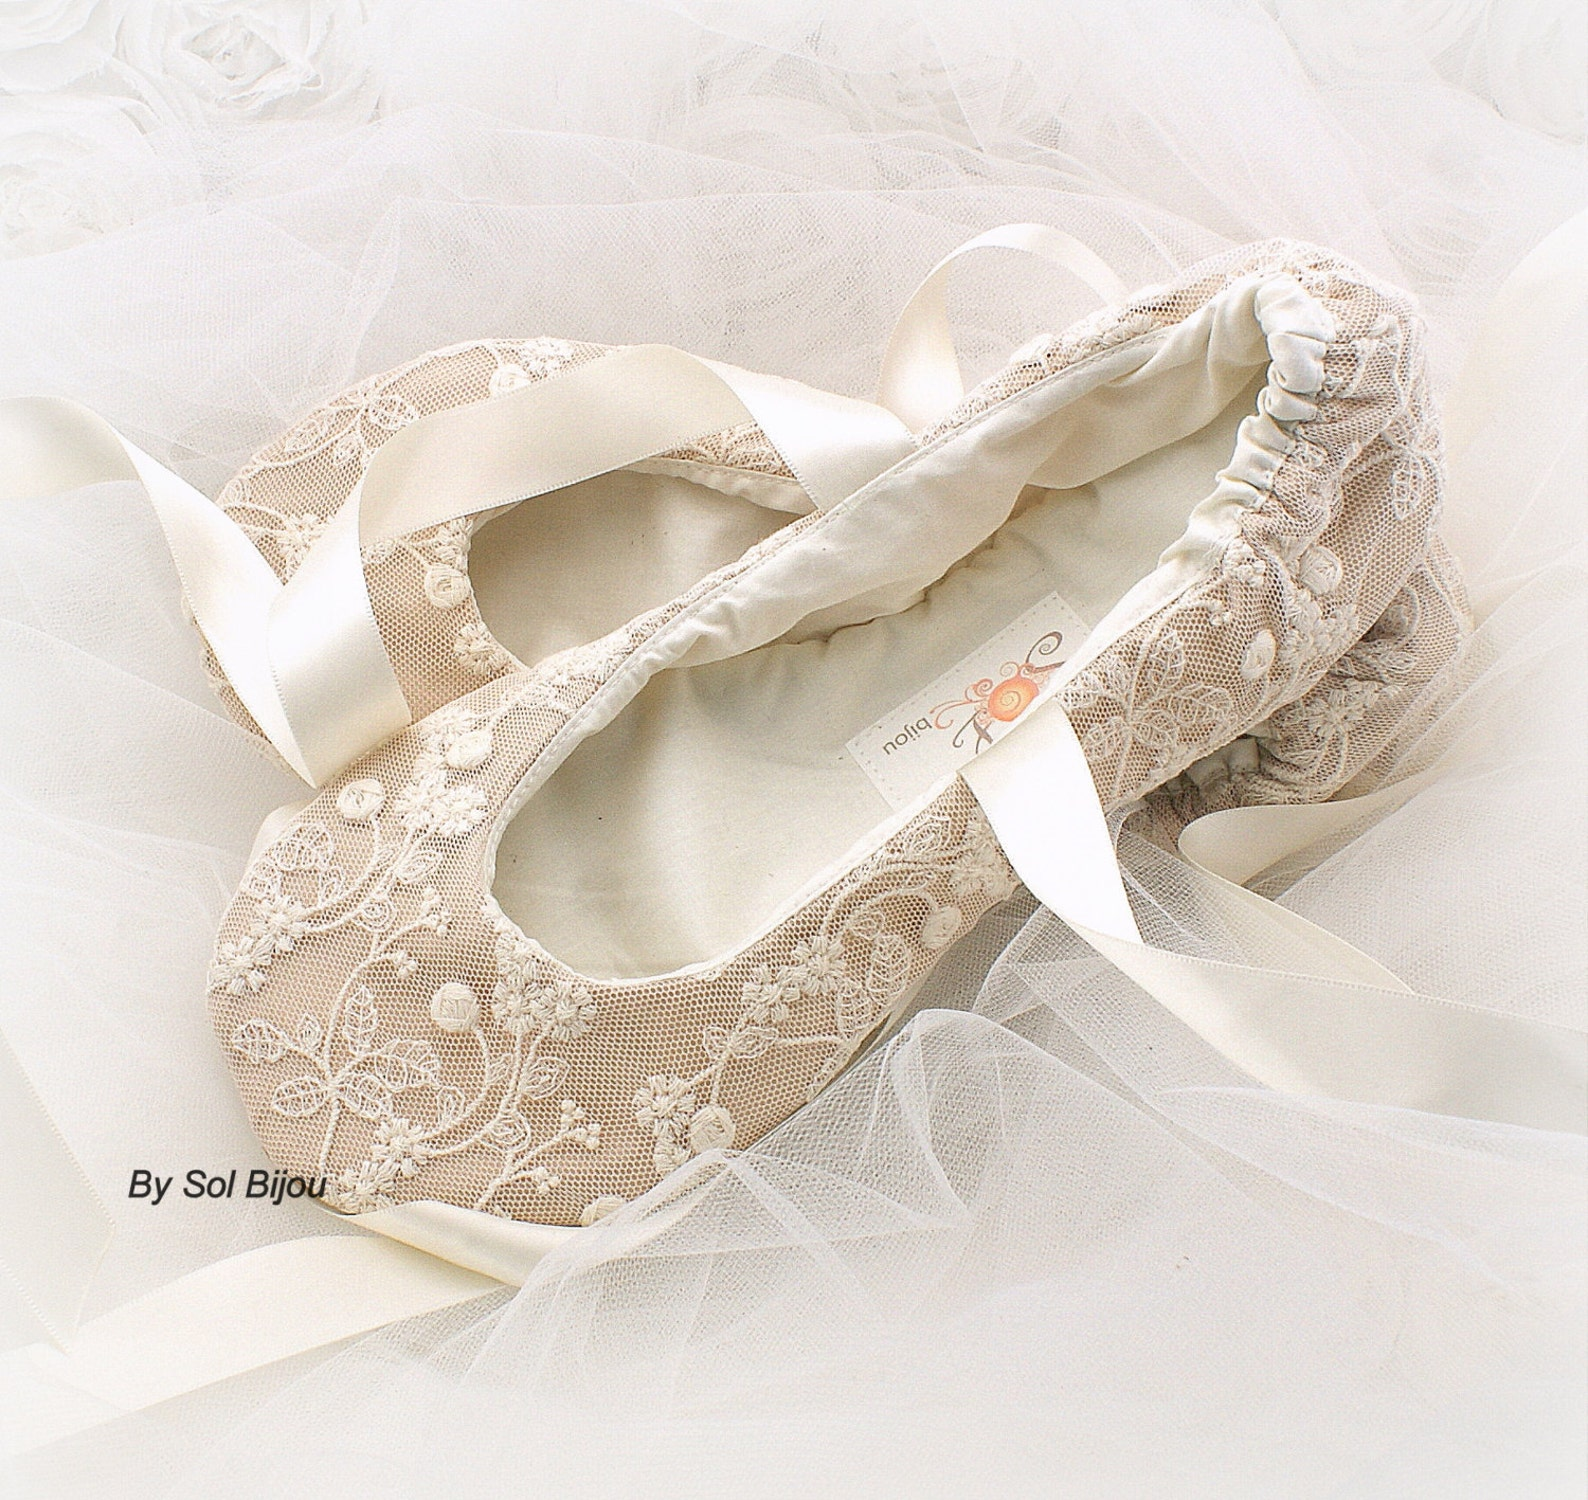 ballet flats, champagne, ivory, burgundy, wine, wedding flats, bridal shoes, flats, vintage wedding, ballet slippers, lace flats